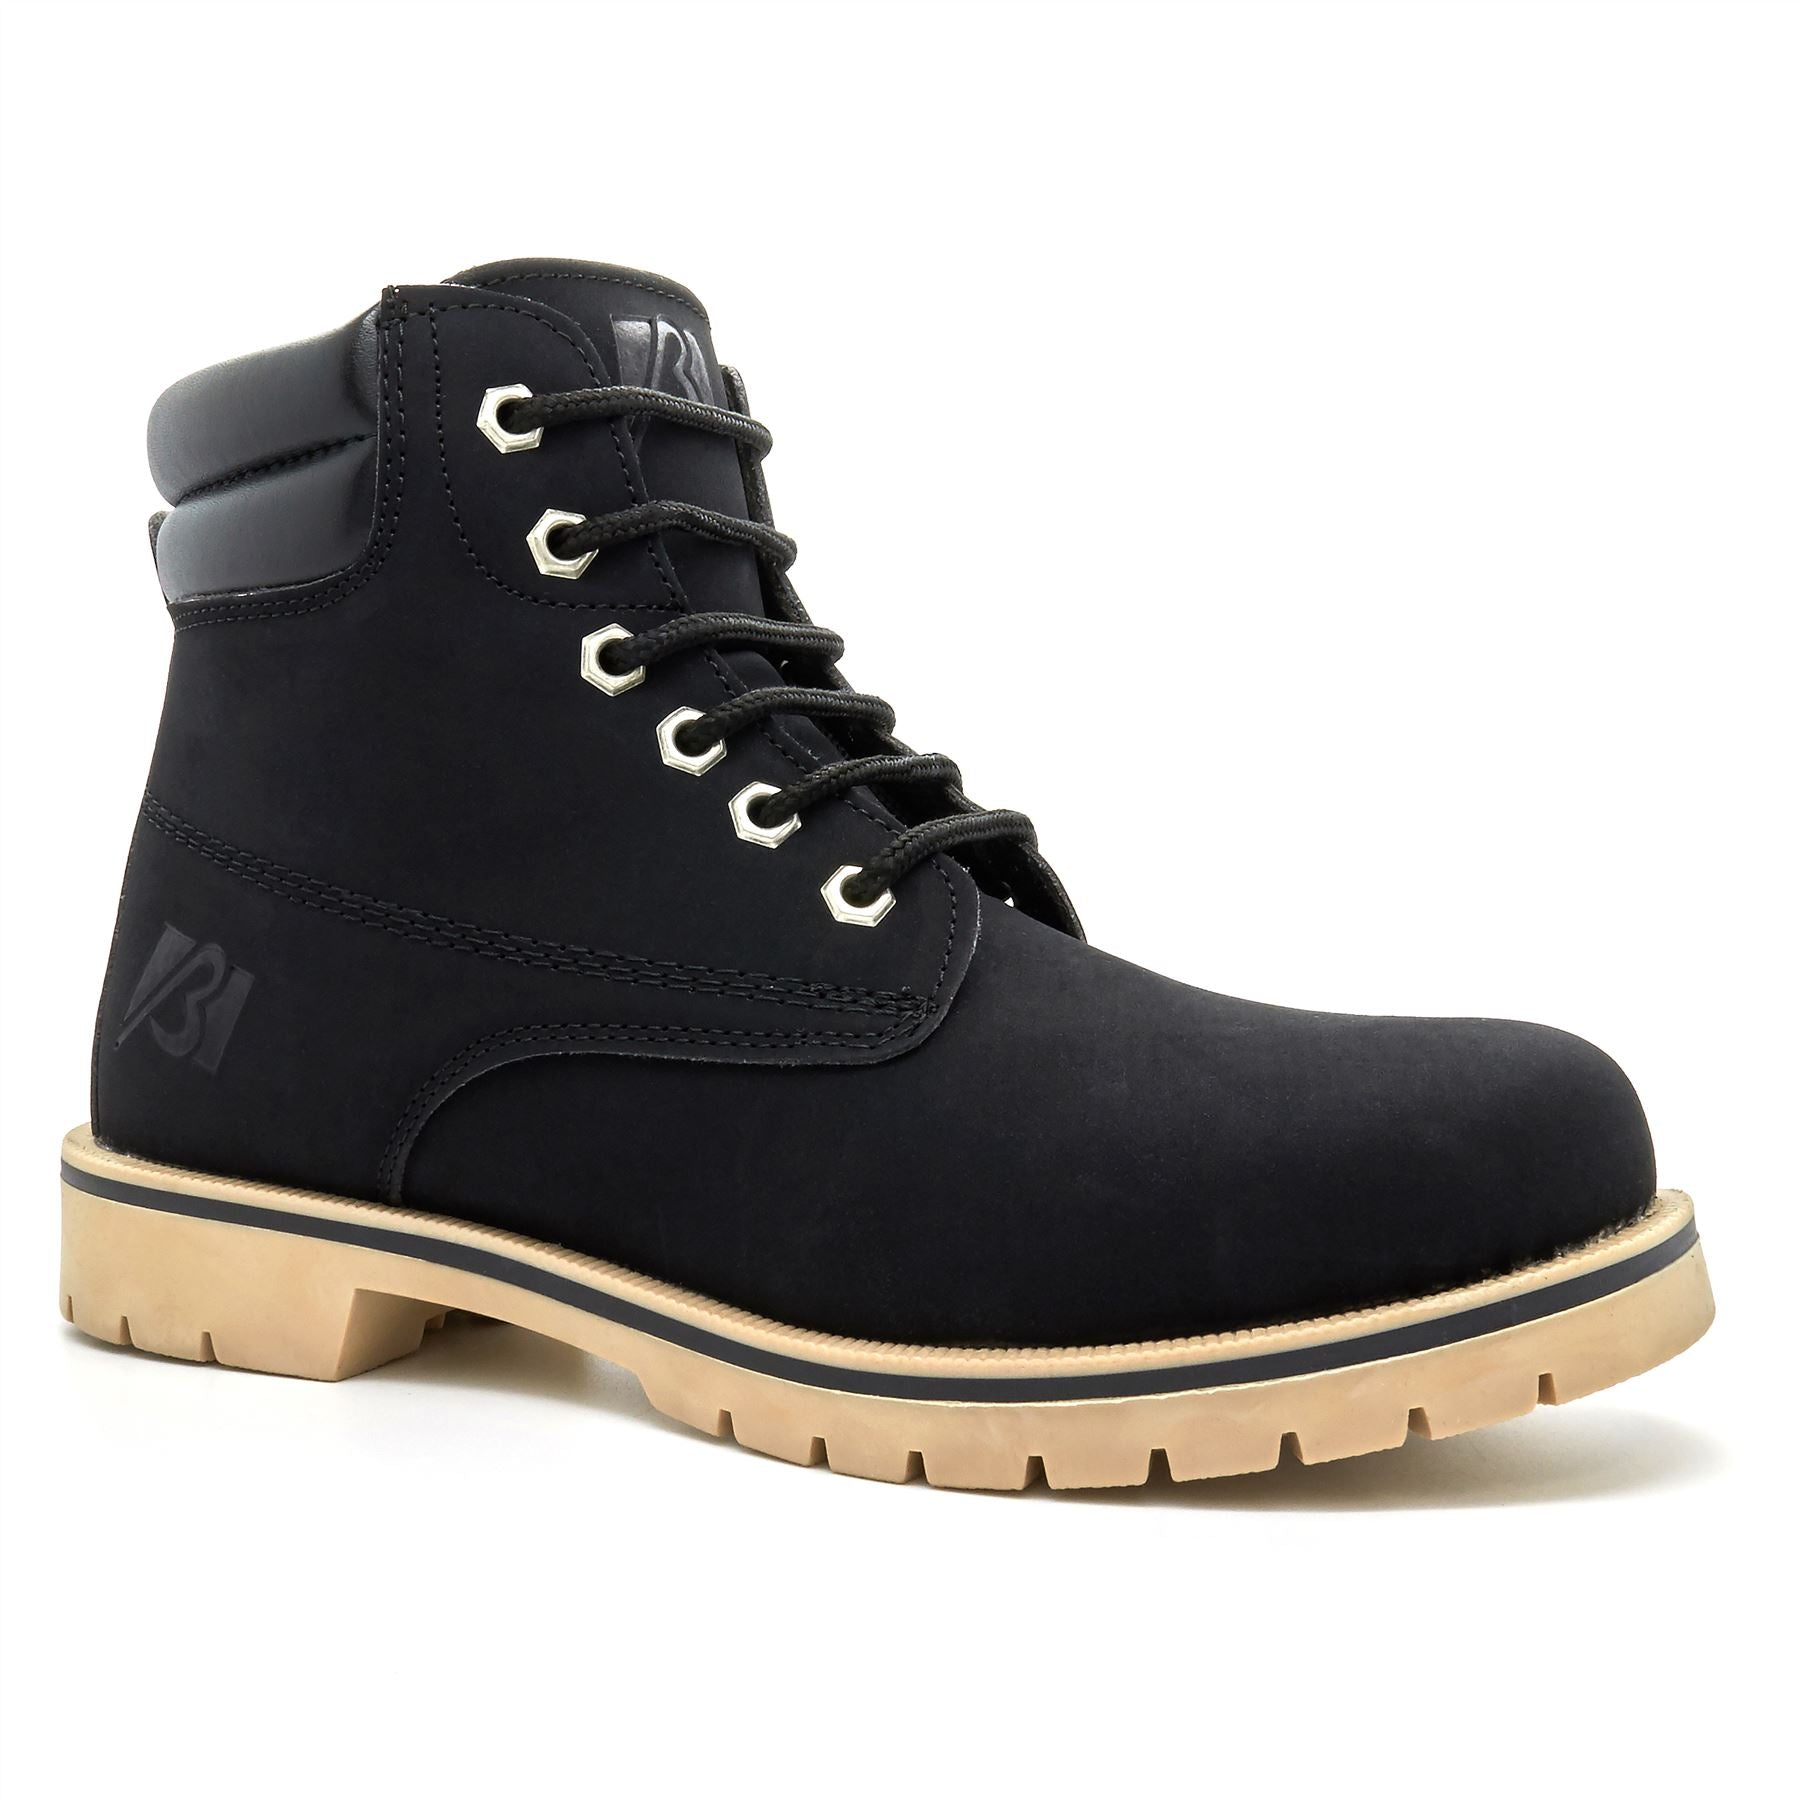 Black 6 Eyelet Lace Up Boots